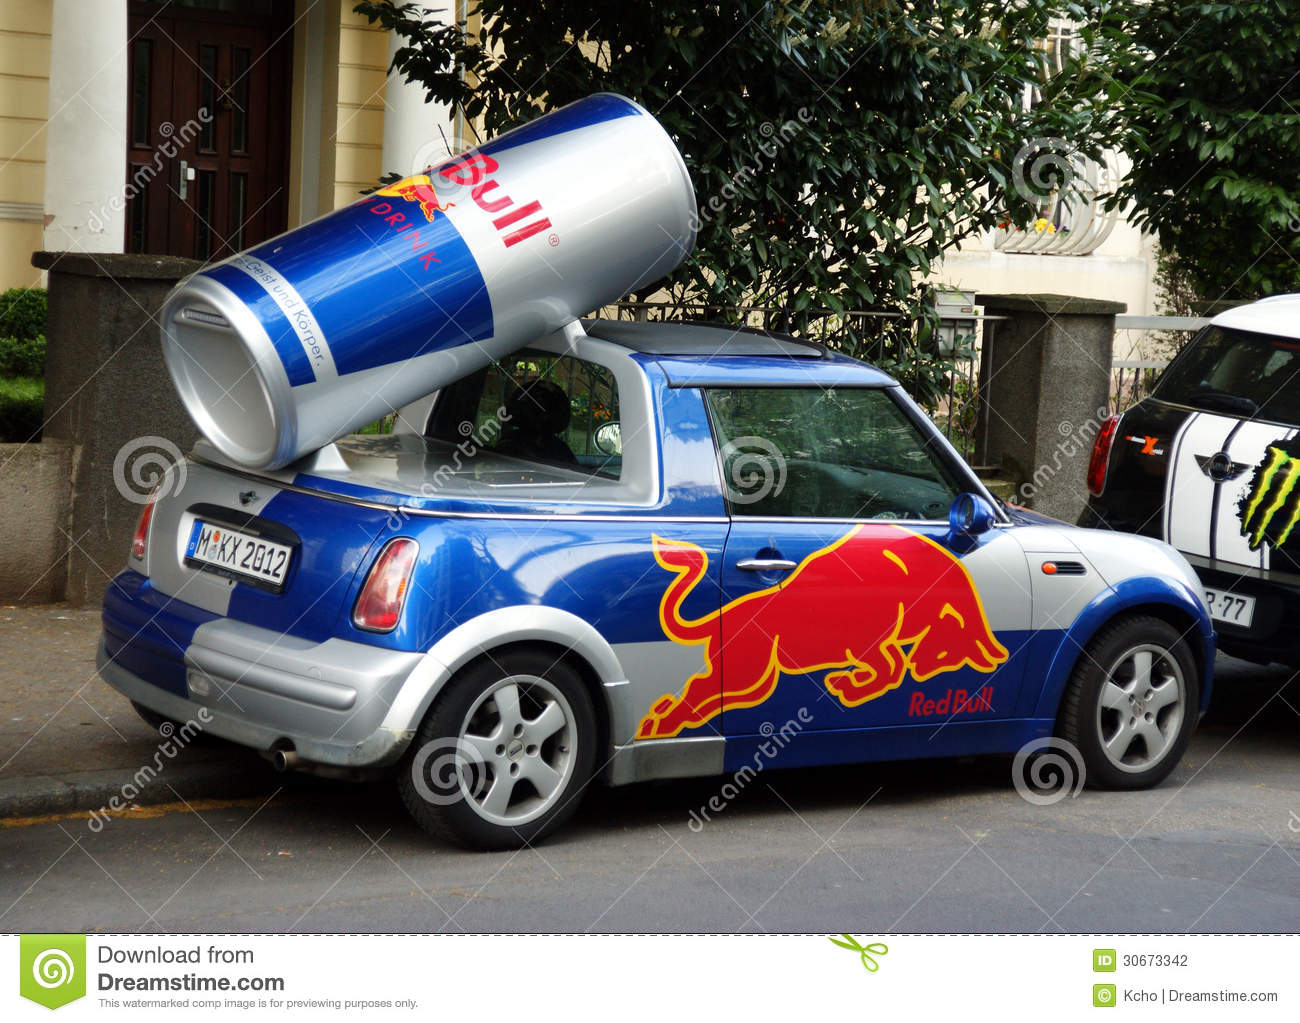 Redbull Car Editorial Photography Image 30673342